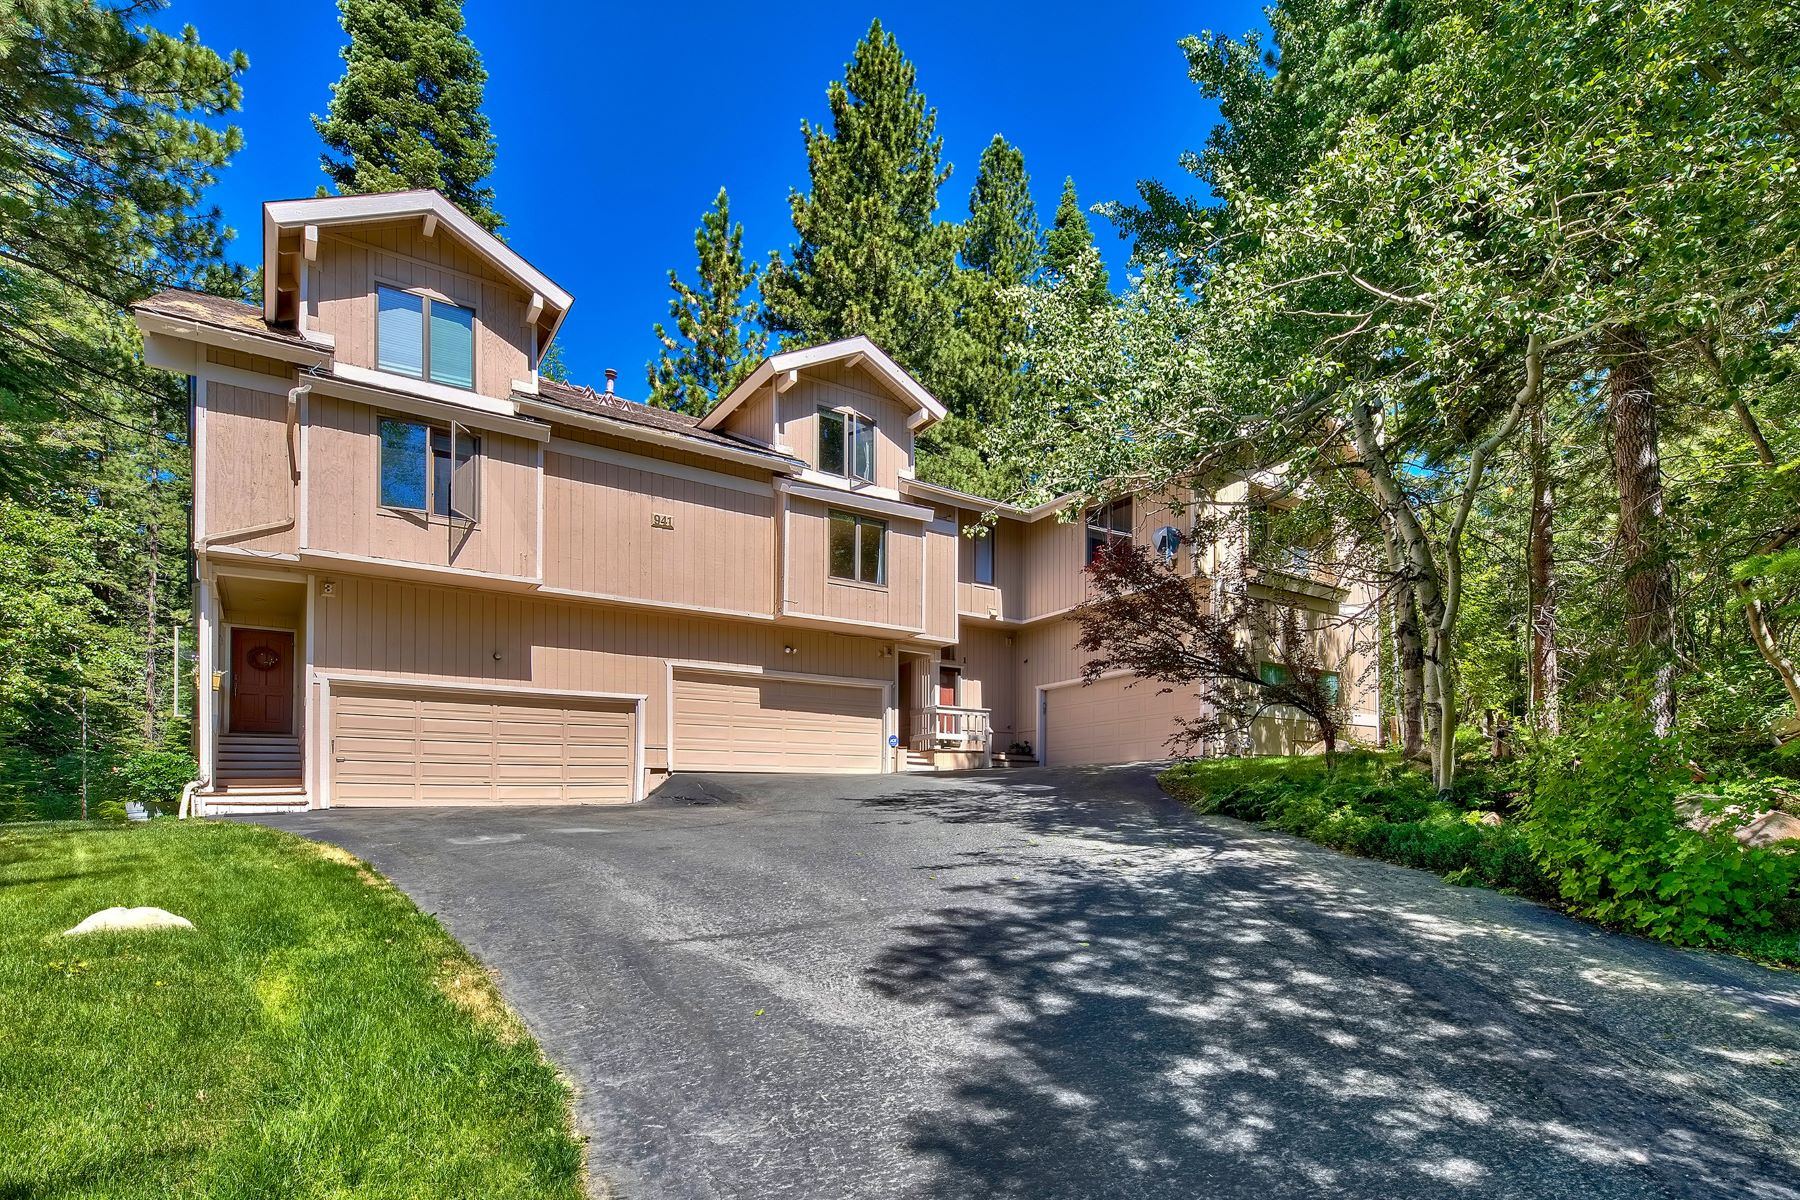 Additional photo for property listing at 941 Divot Court #2, Incline Village, NV 89451 941 Divot Court #2 Incline Village, Nevada 89451 United States